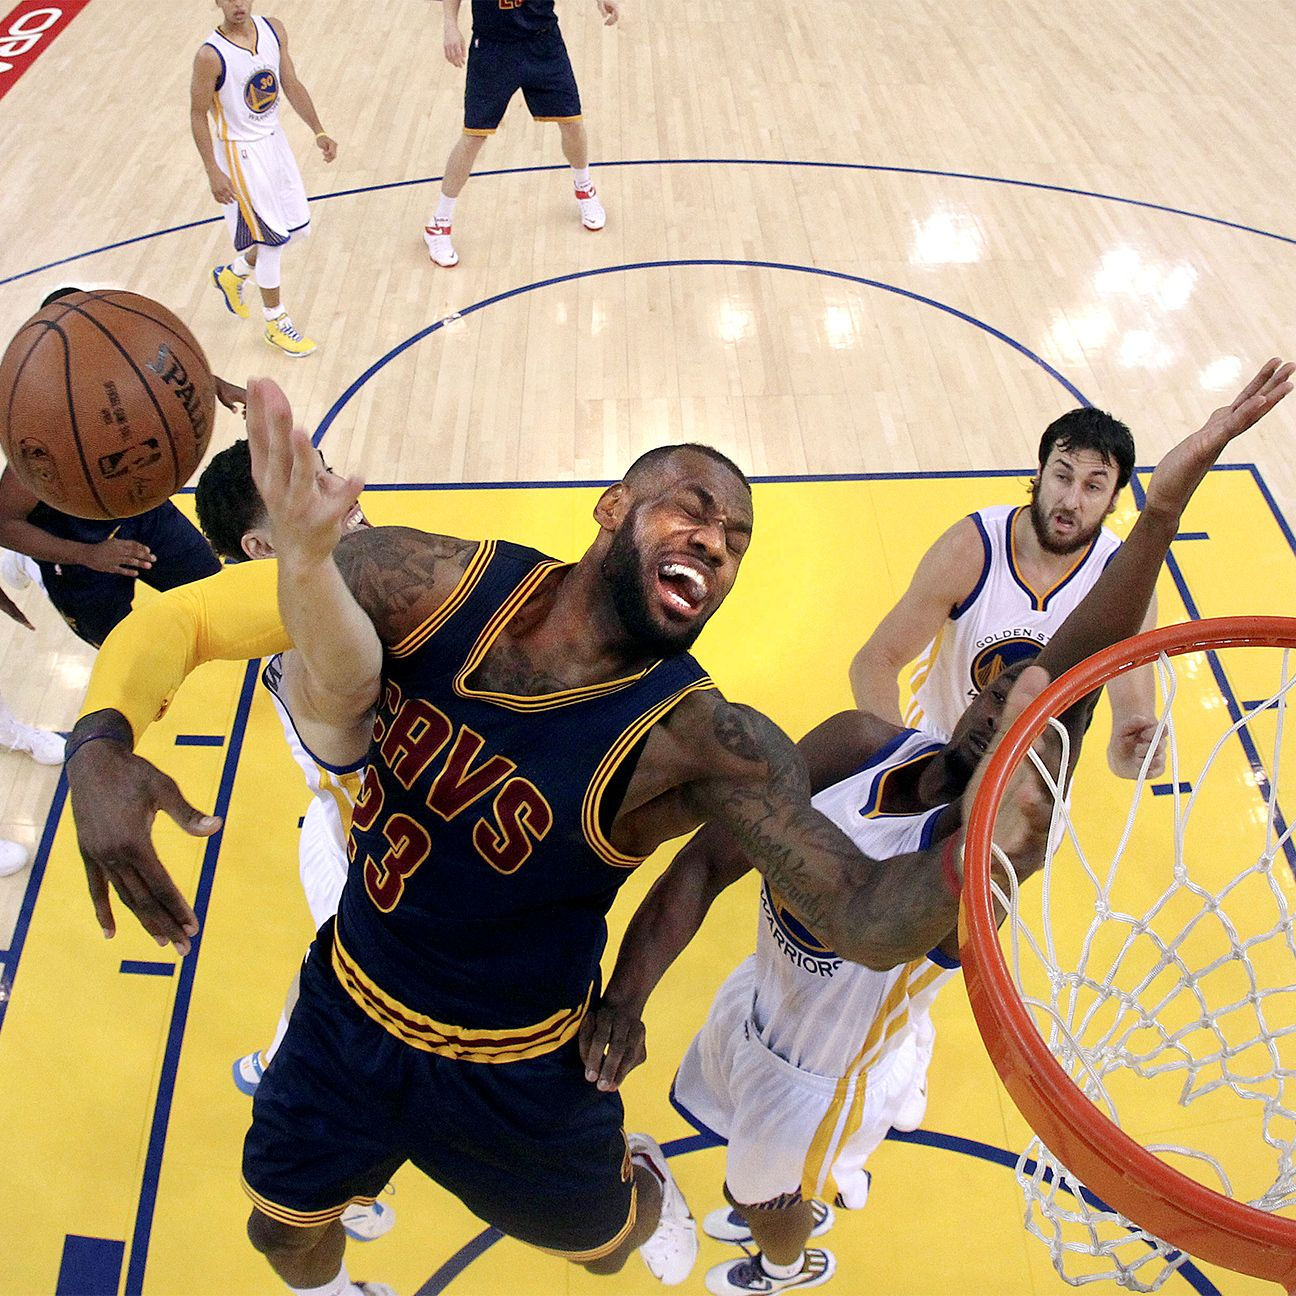 Warriors Game Live Stream For Free: Warriors Game Live Score